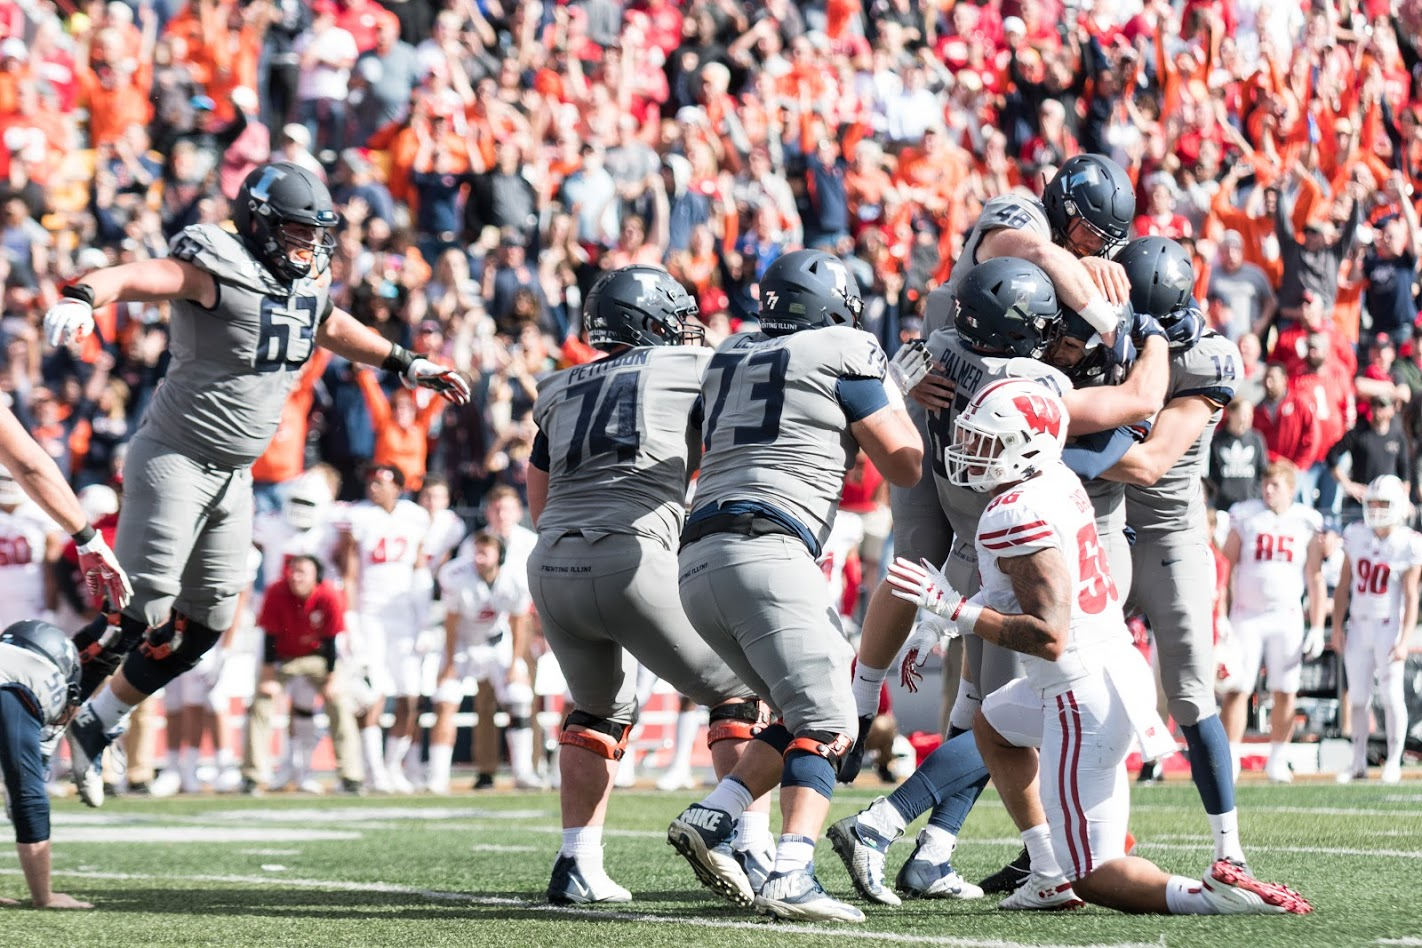 The+Illini+celebrate+the+victory+with+kicker+James+McCourt+during+the+game+against+Wisconsin.++The+Illini+won+24-23.